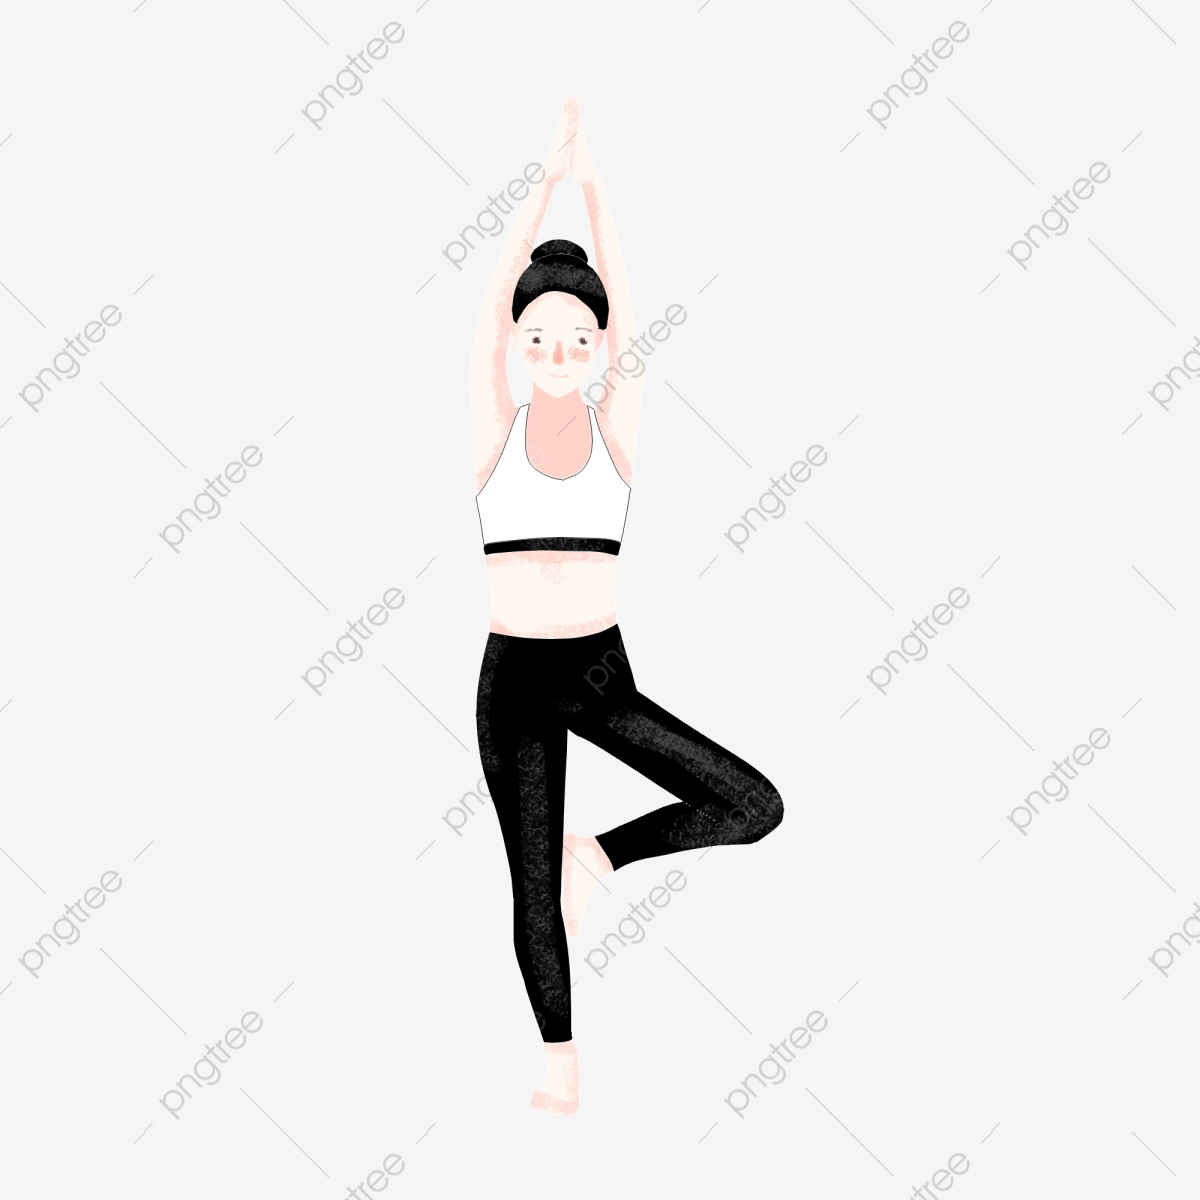 Sport Fitness Stretching Yoga Exercise Flat Wind Hand Drawn Cartoon Girl Woman Sport Fitness Stretch Png Transparent Clipart Image And Psd File For Free Download